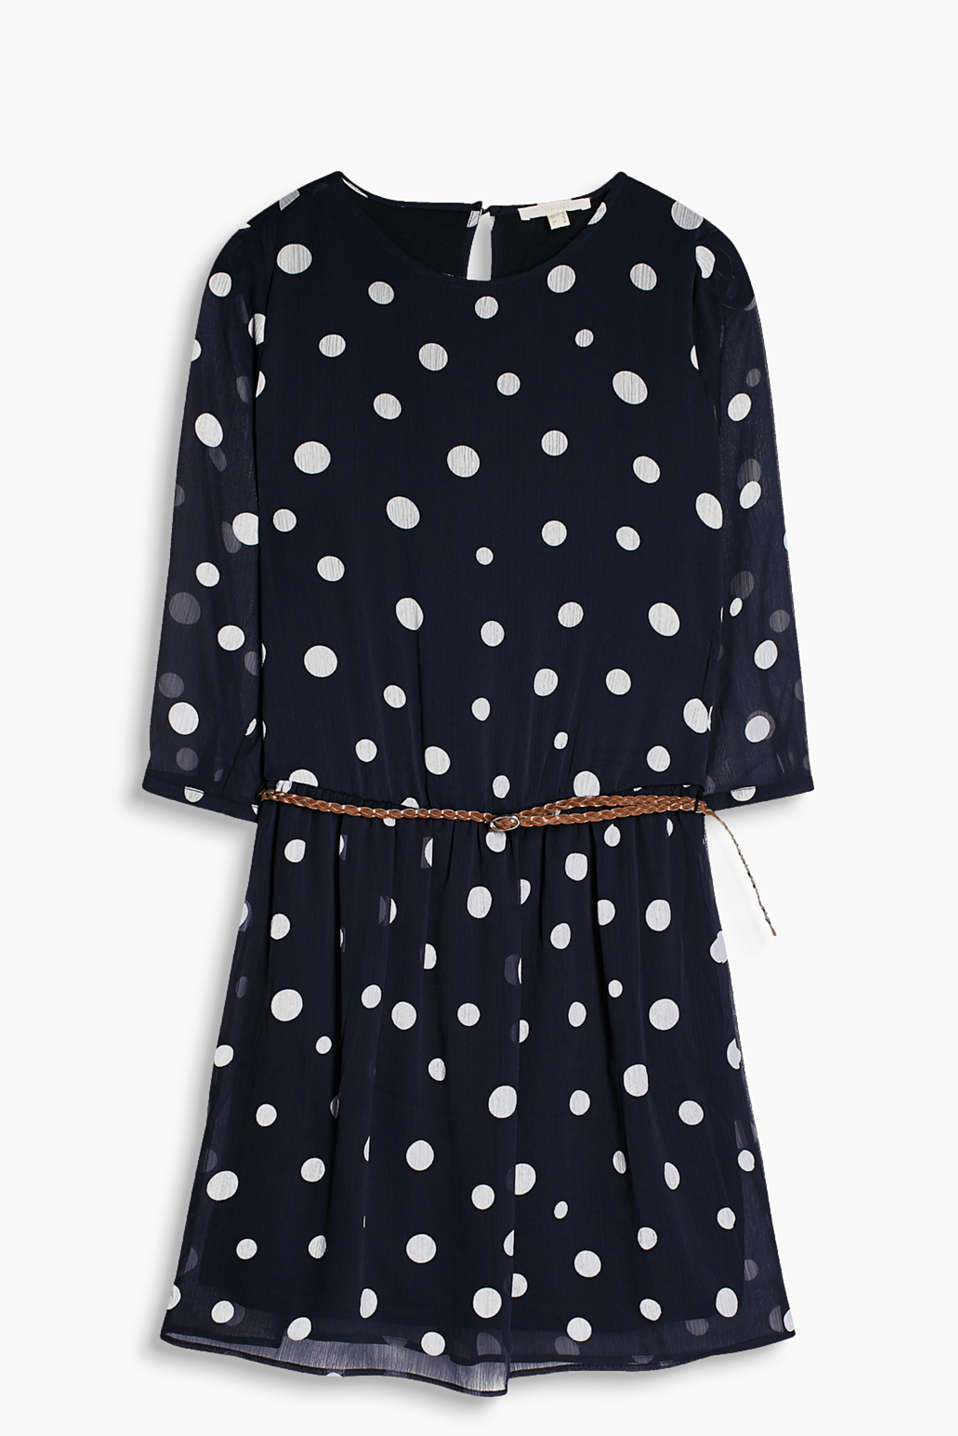 Show off your polka dots! Chiffon dress with a pretty polka dot print and accentuating belt